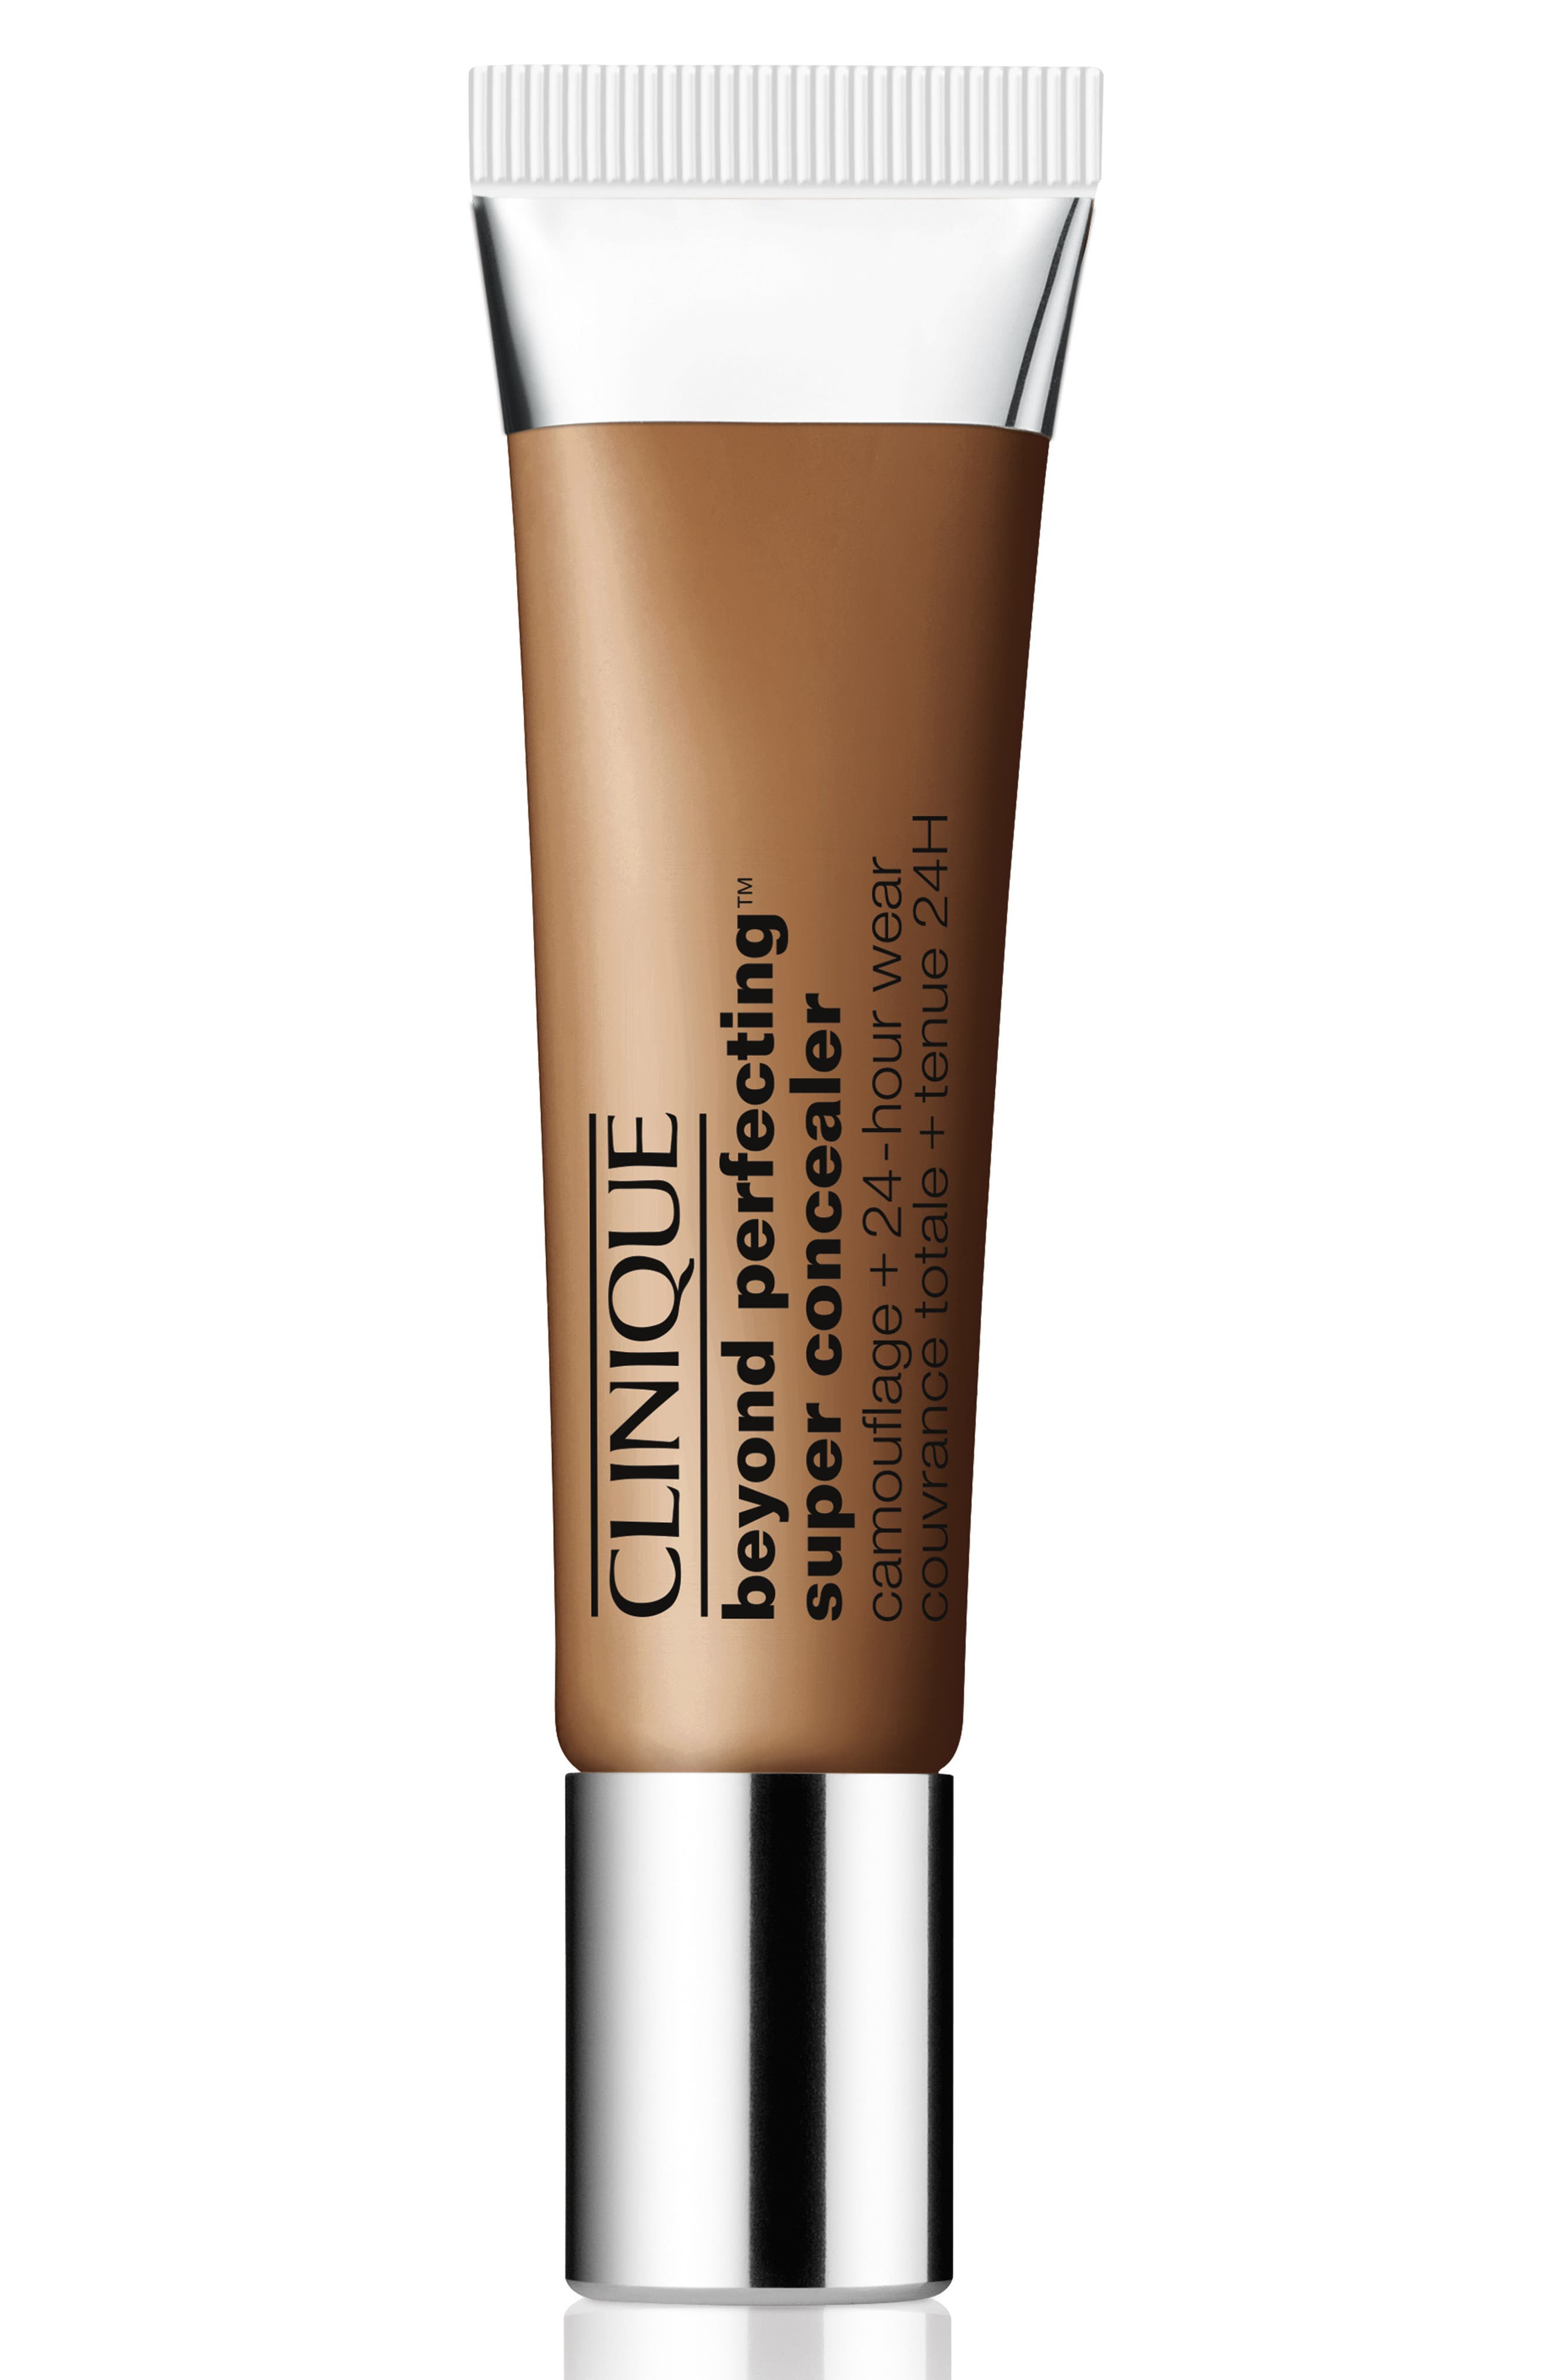 Beyond Perfecting Super Concealer Camouflage + 24-Hour Wear,                             Main thumbnail 1, color,                             DEEP 28